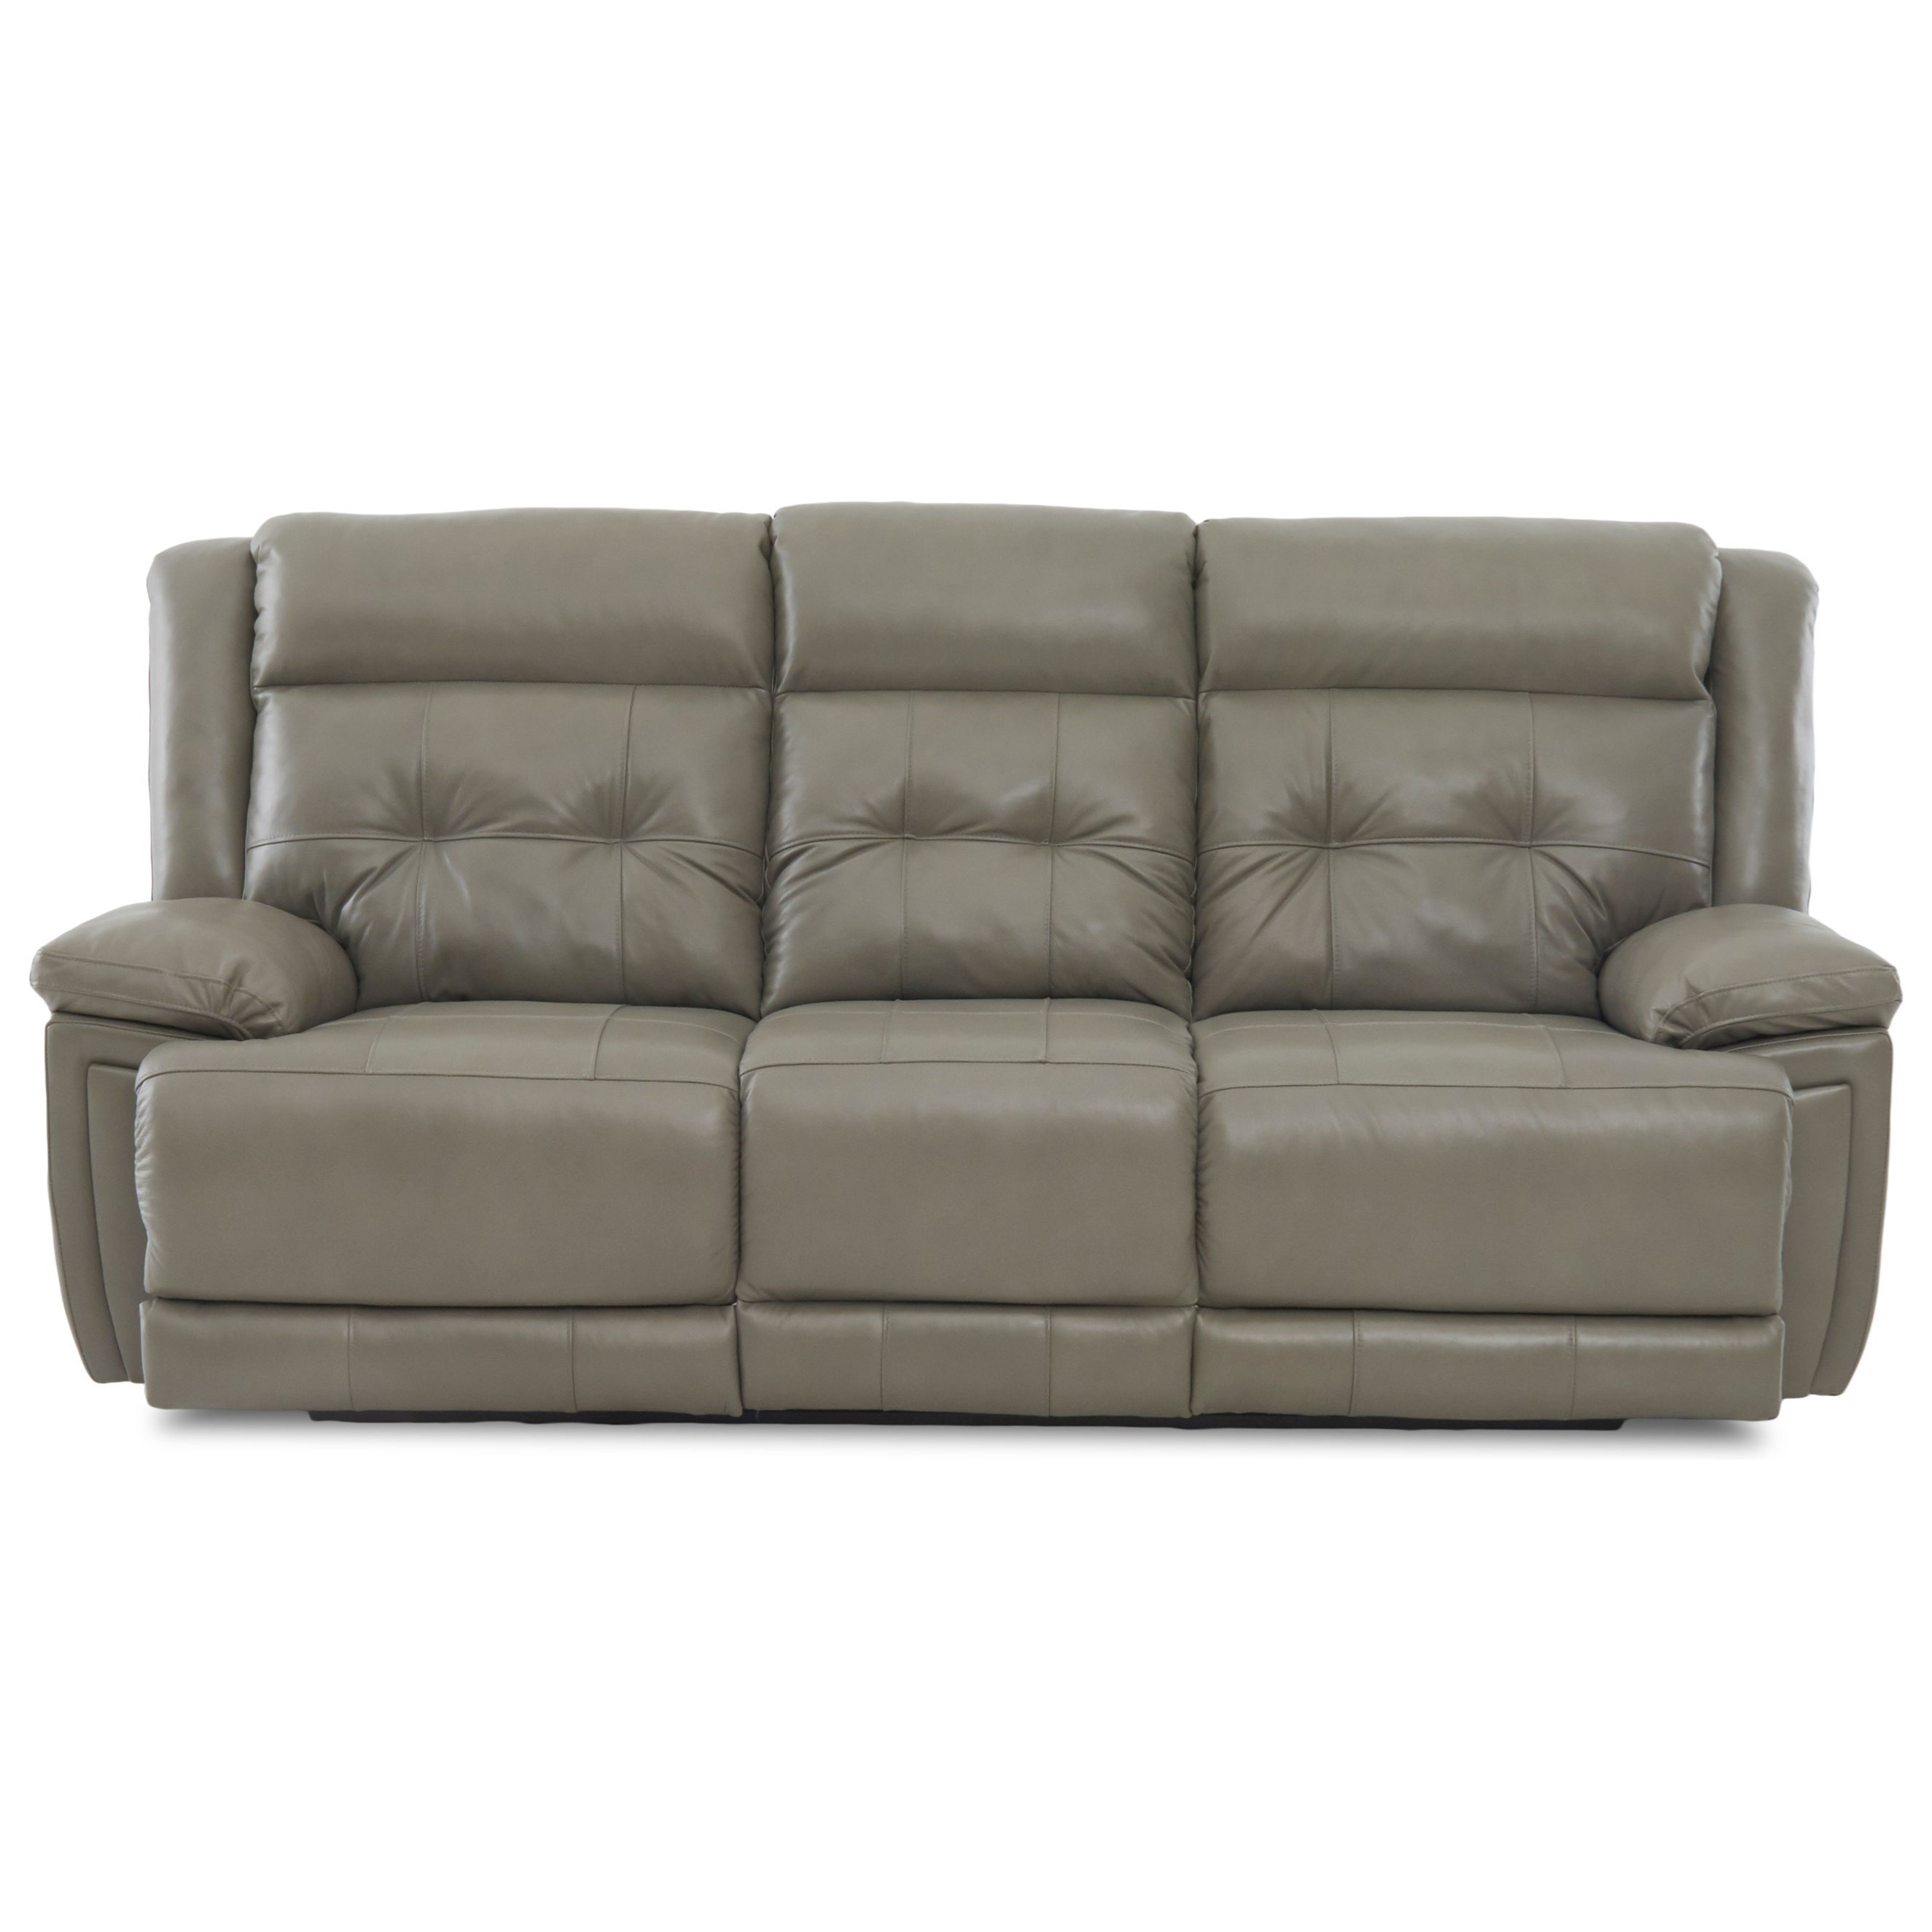 klaussner grand power reclining sofa cushion replacement malaysia mccall casual with headrest lumbar and usb port by